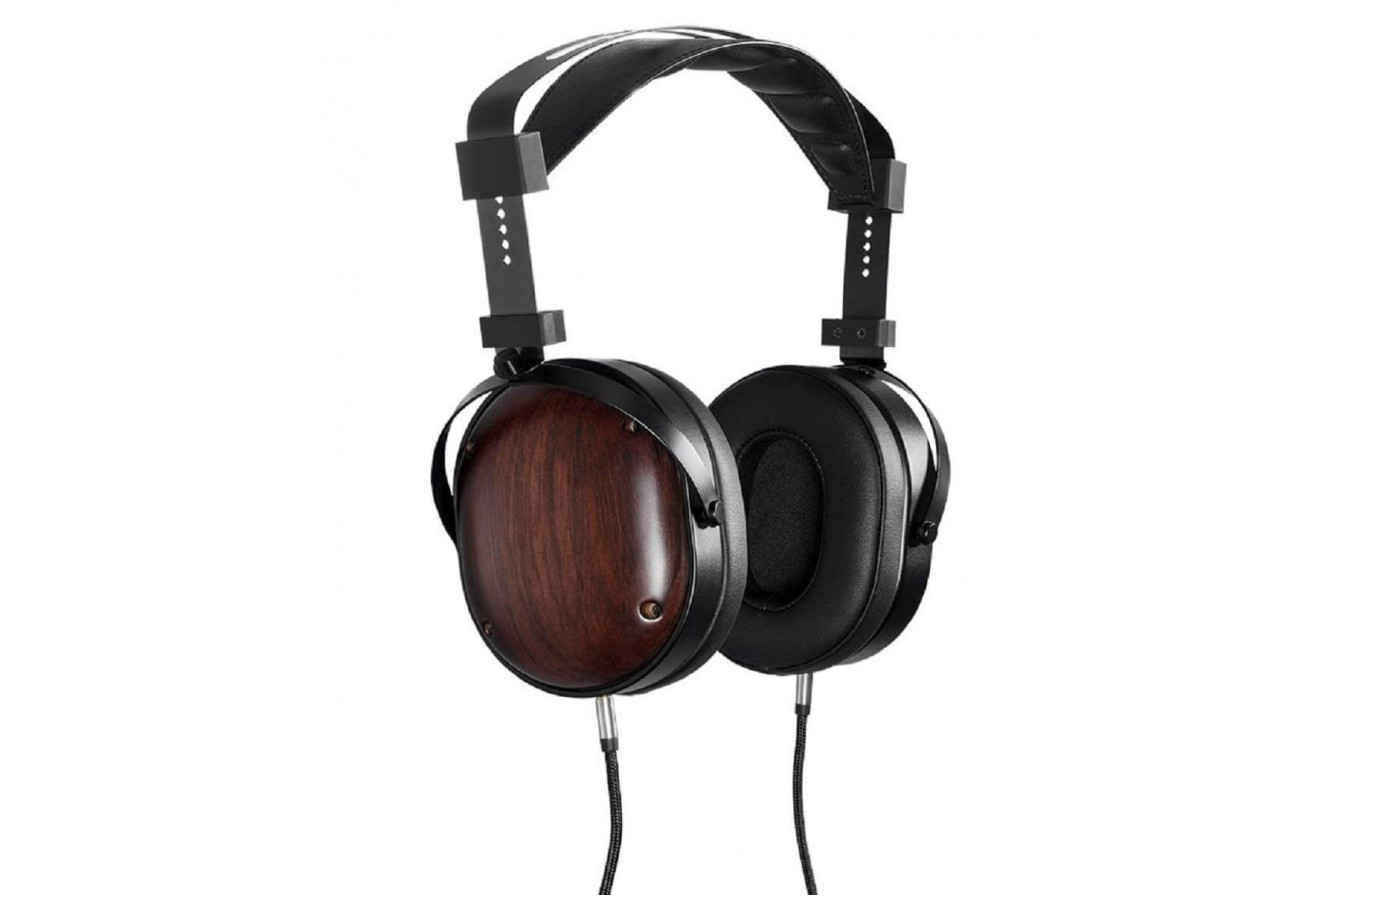 The Monolith M565C features a frequency response range of 15Hz to 50kHz.